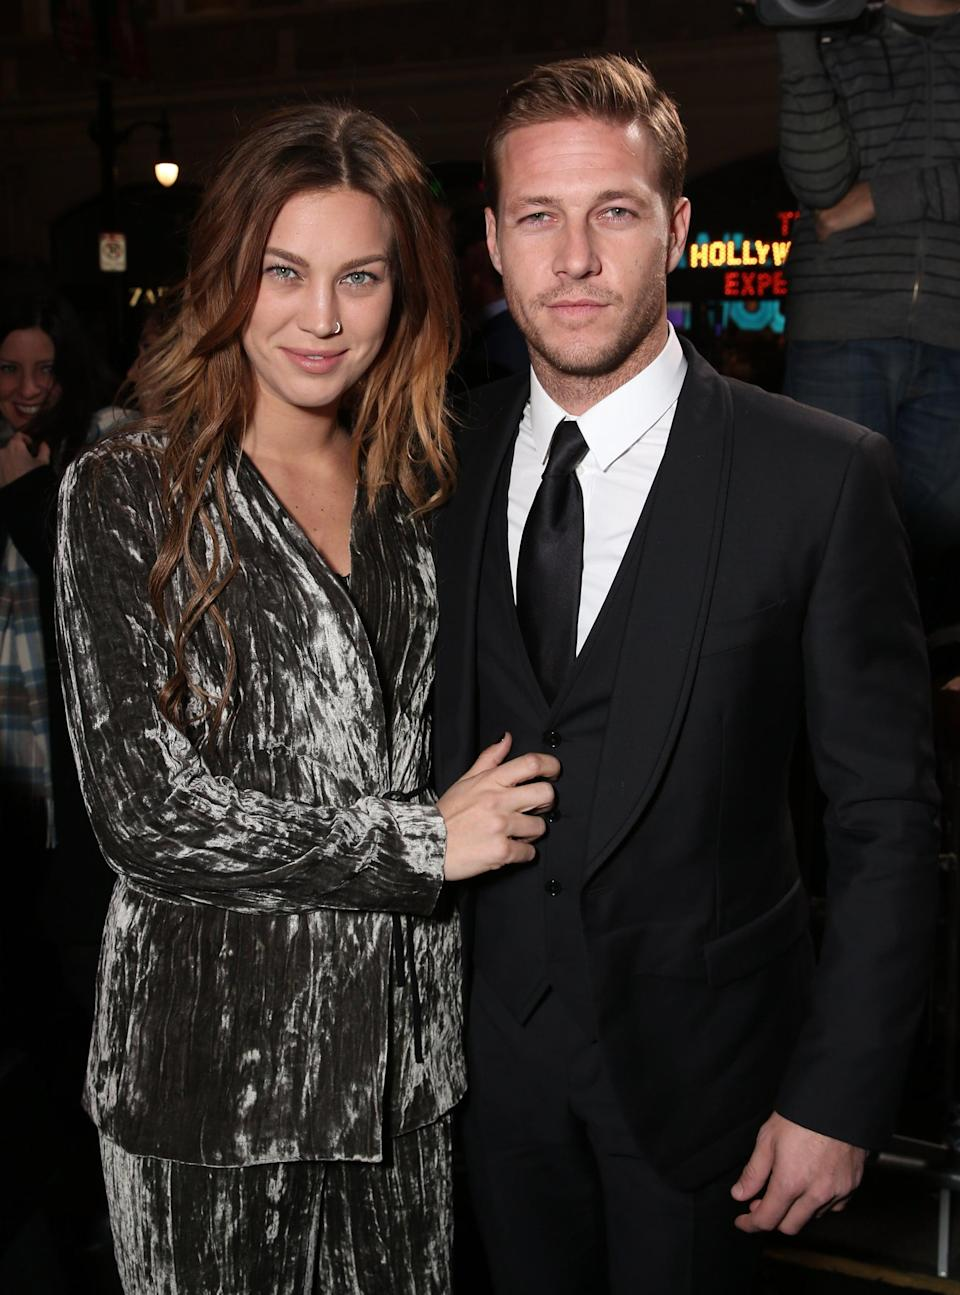 <p>In December 2015, Luke took Swedish musician Ellinor Olovsdotter (aka Elliphant) as his date to the premiere of his movie <strong>Point Break</strong>, though he's never confirmed whether they were actually an item.</p>